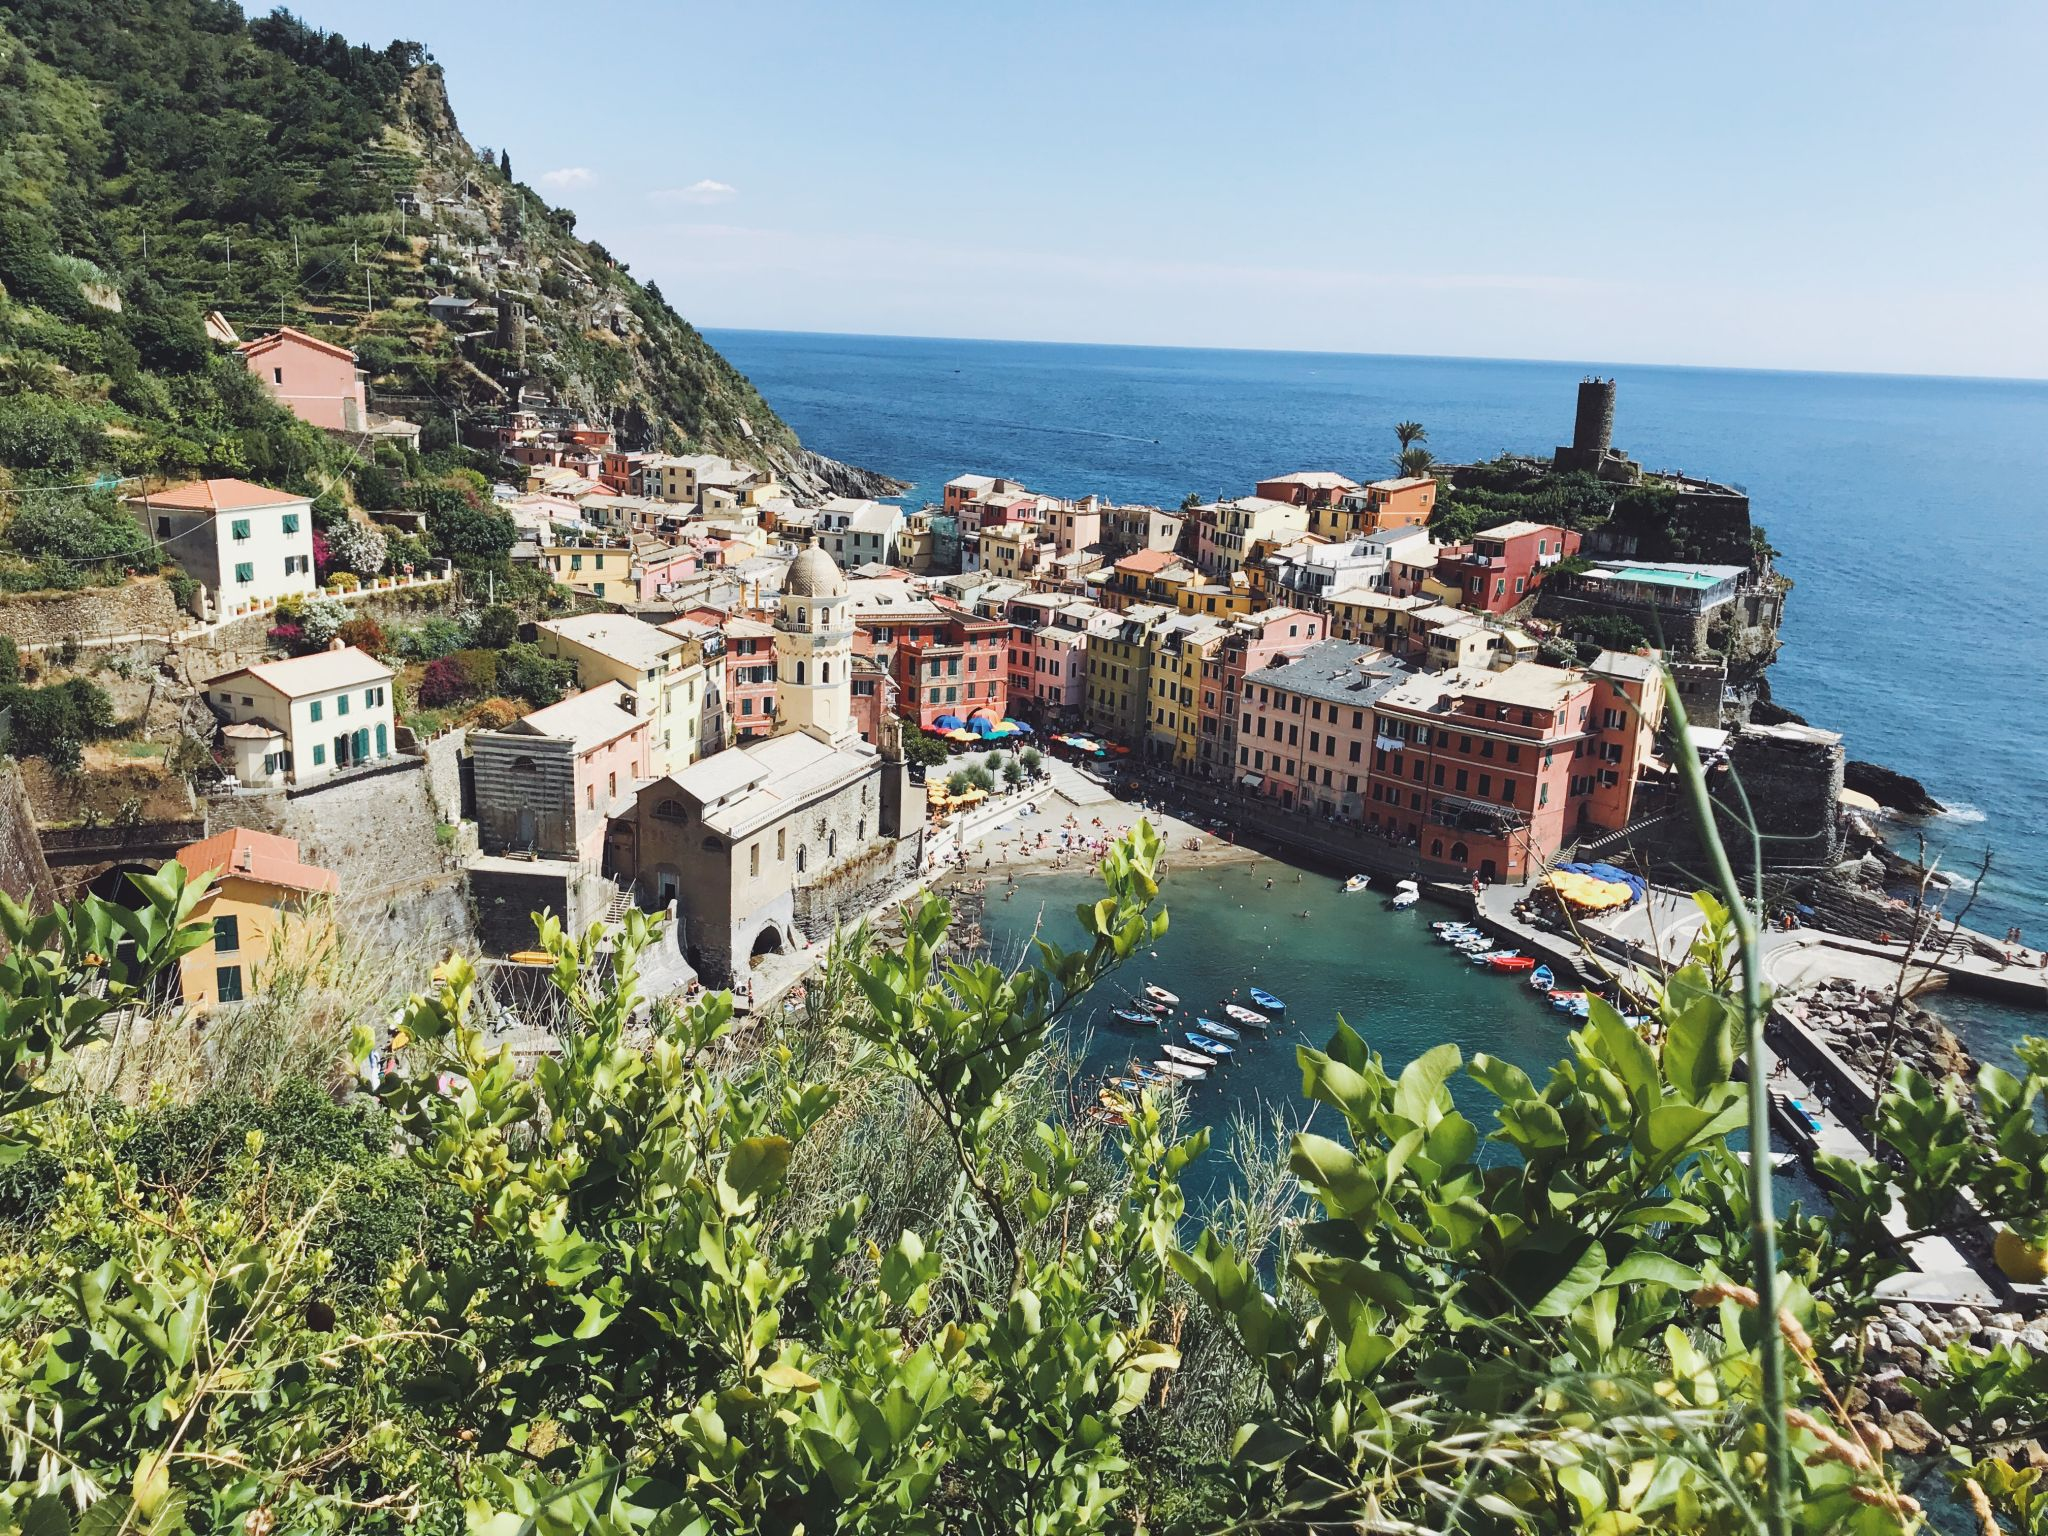 cinque terre trail, vernazza viewpoint